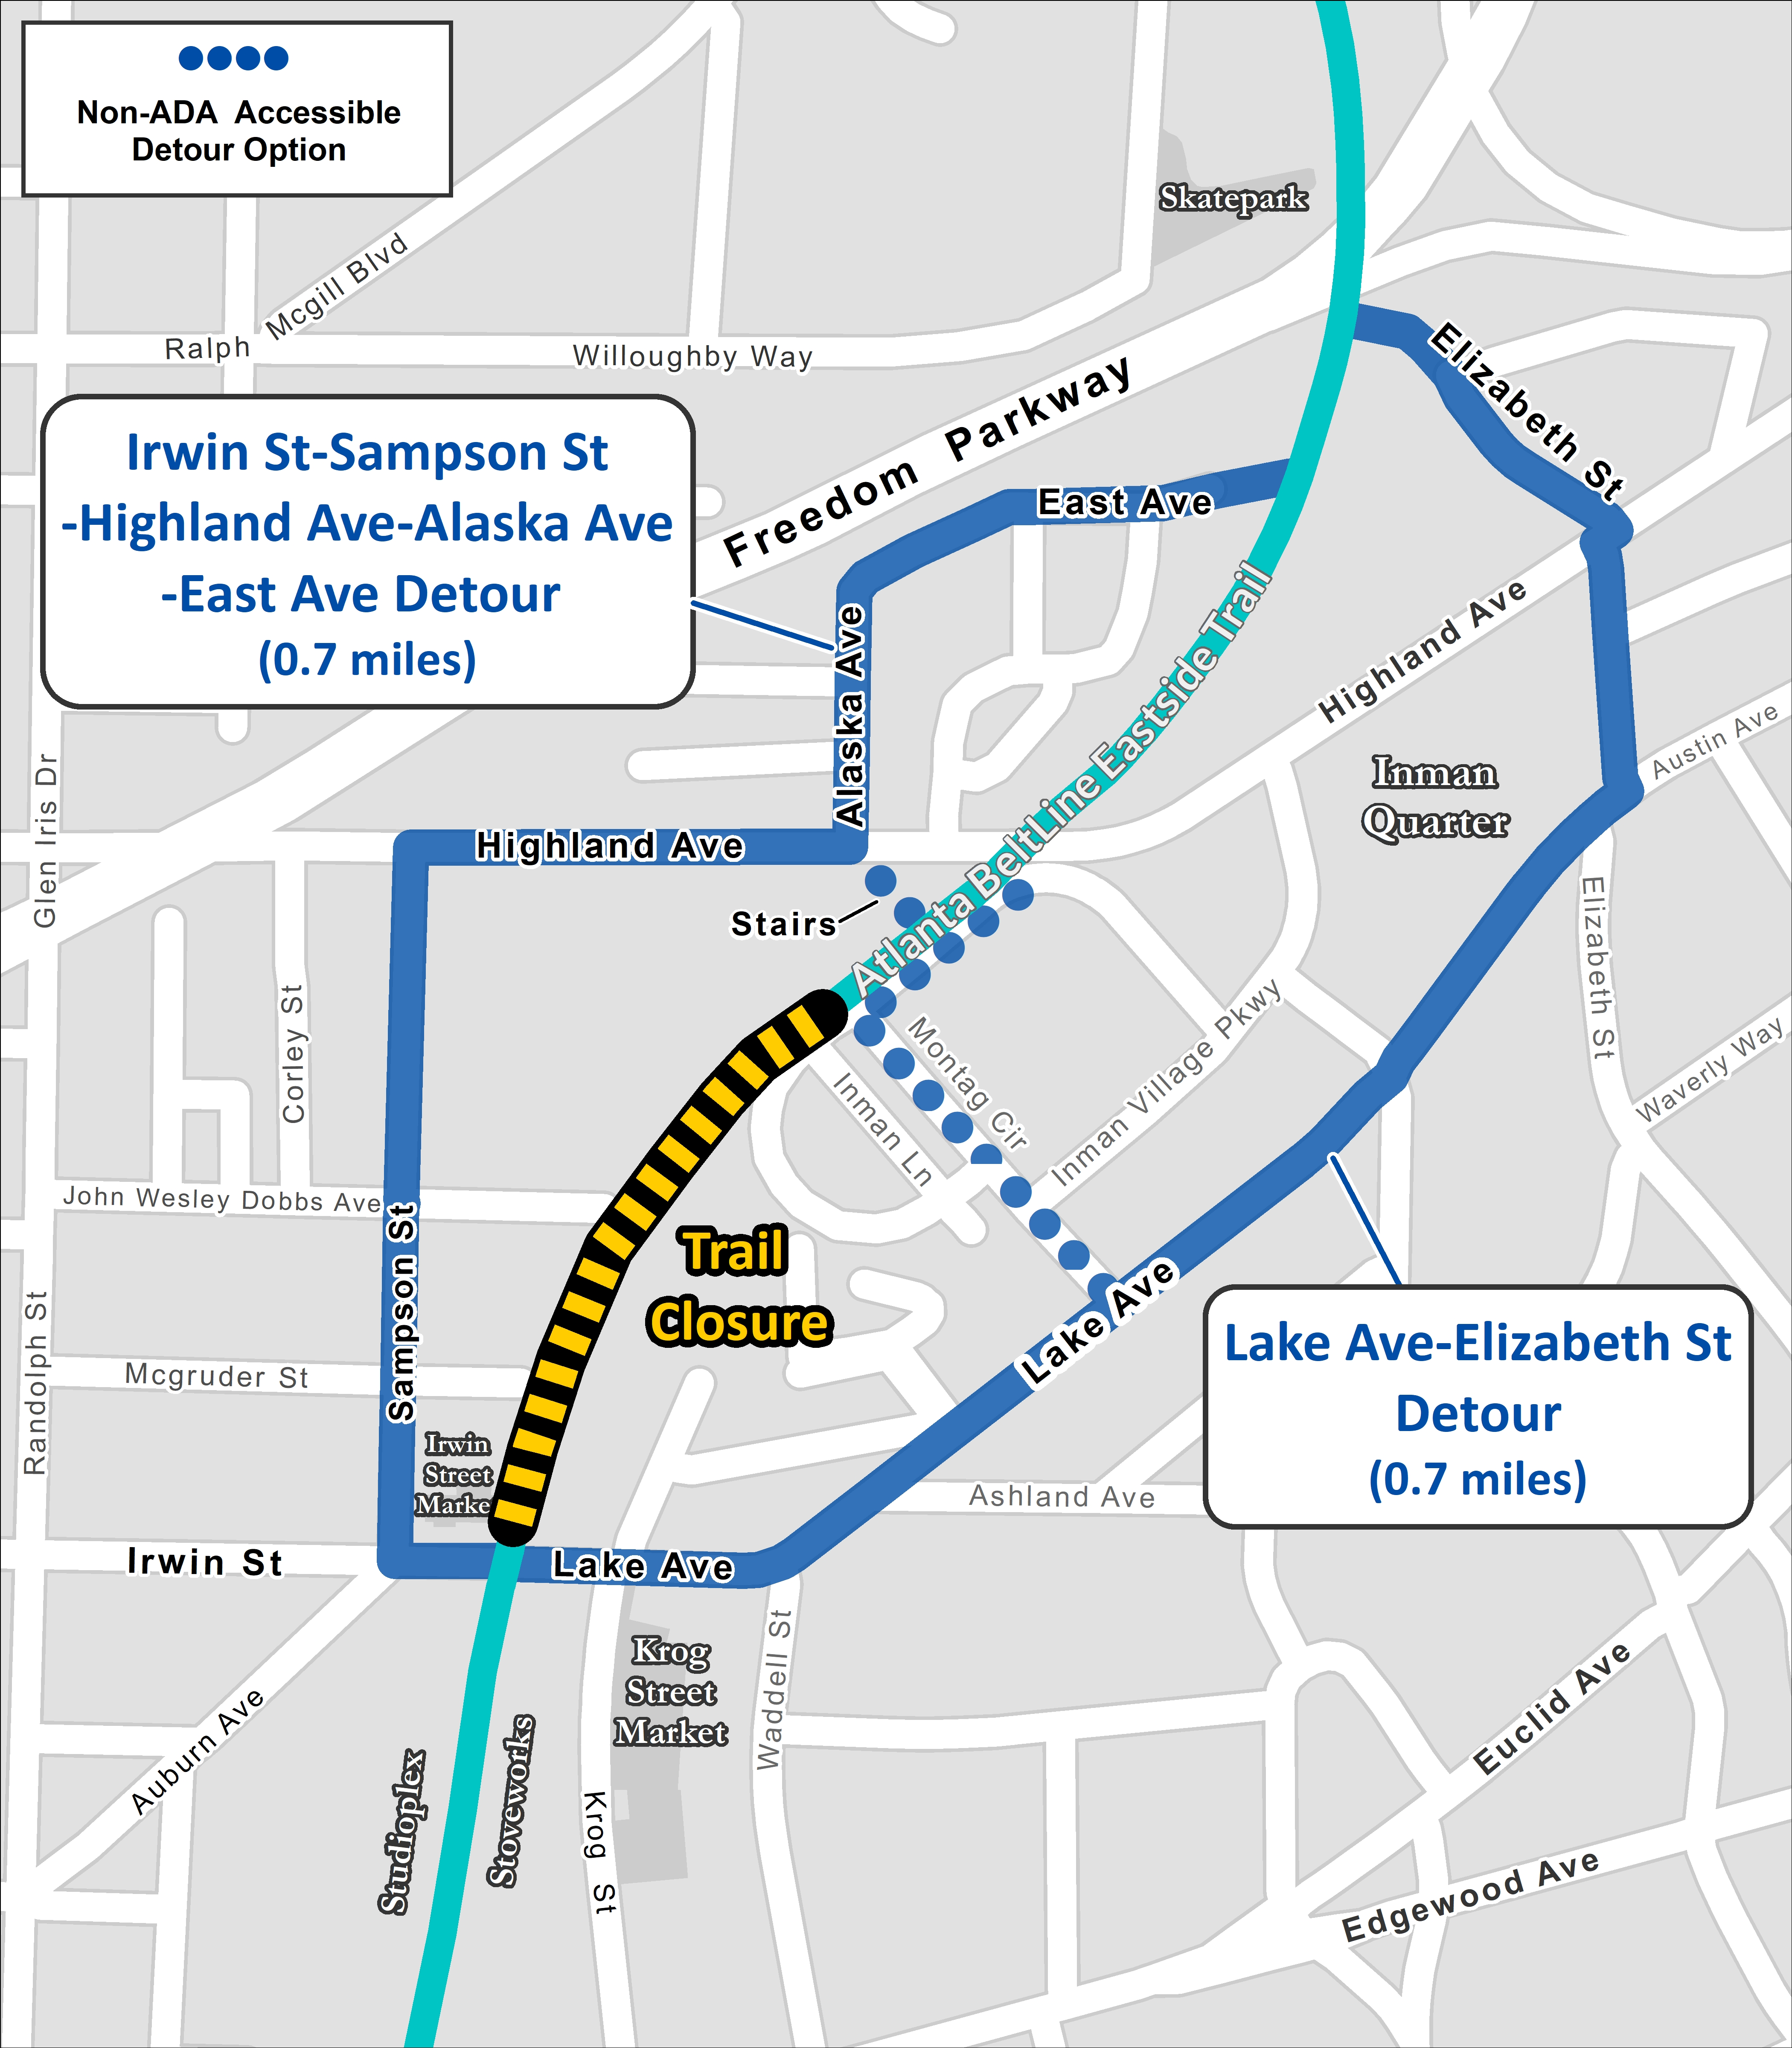 A map shows how to get around the closed section of the Beltline